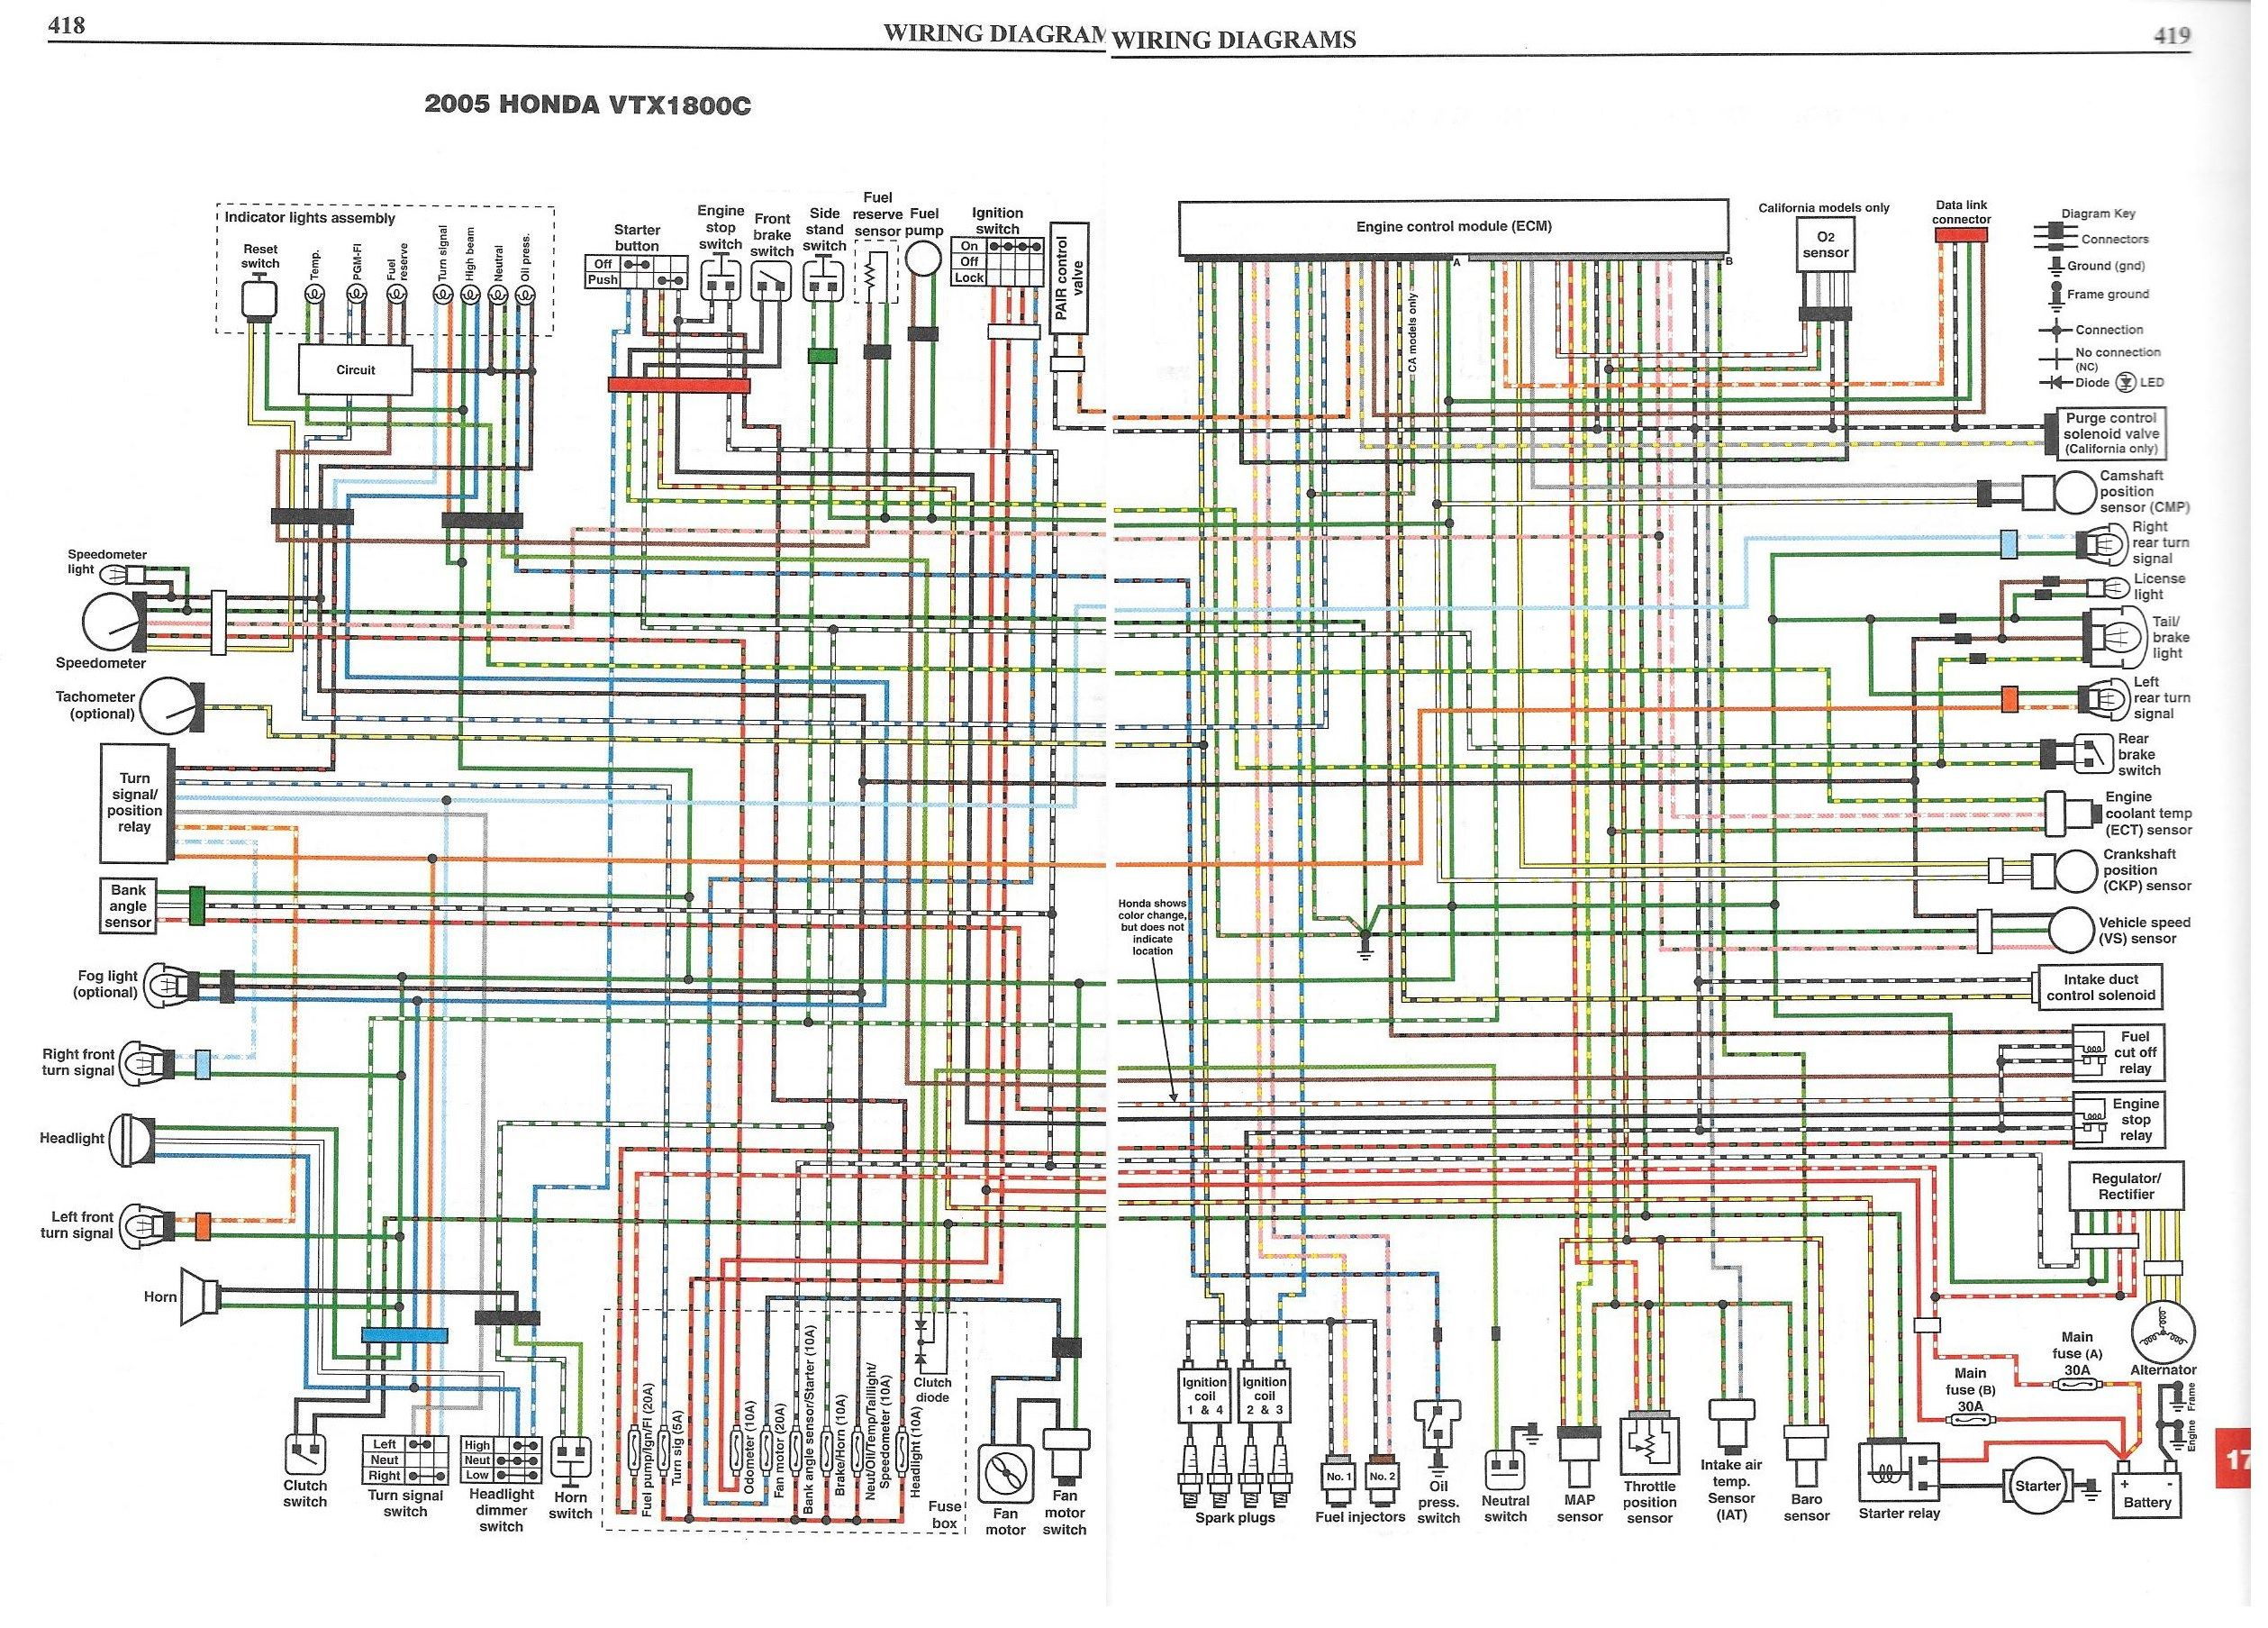 vtx1300c wiring diagram throughout vtx 1300 bike diagram wire bike wiring diagram for honda [ 2518 x 1807 Pixel ]